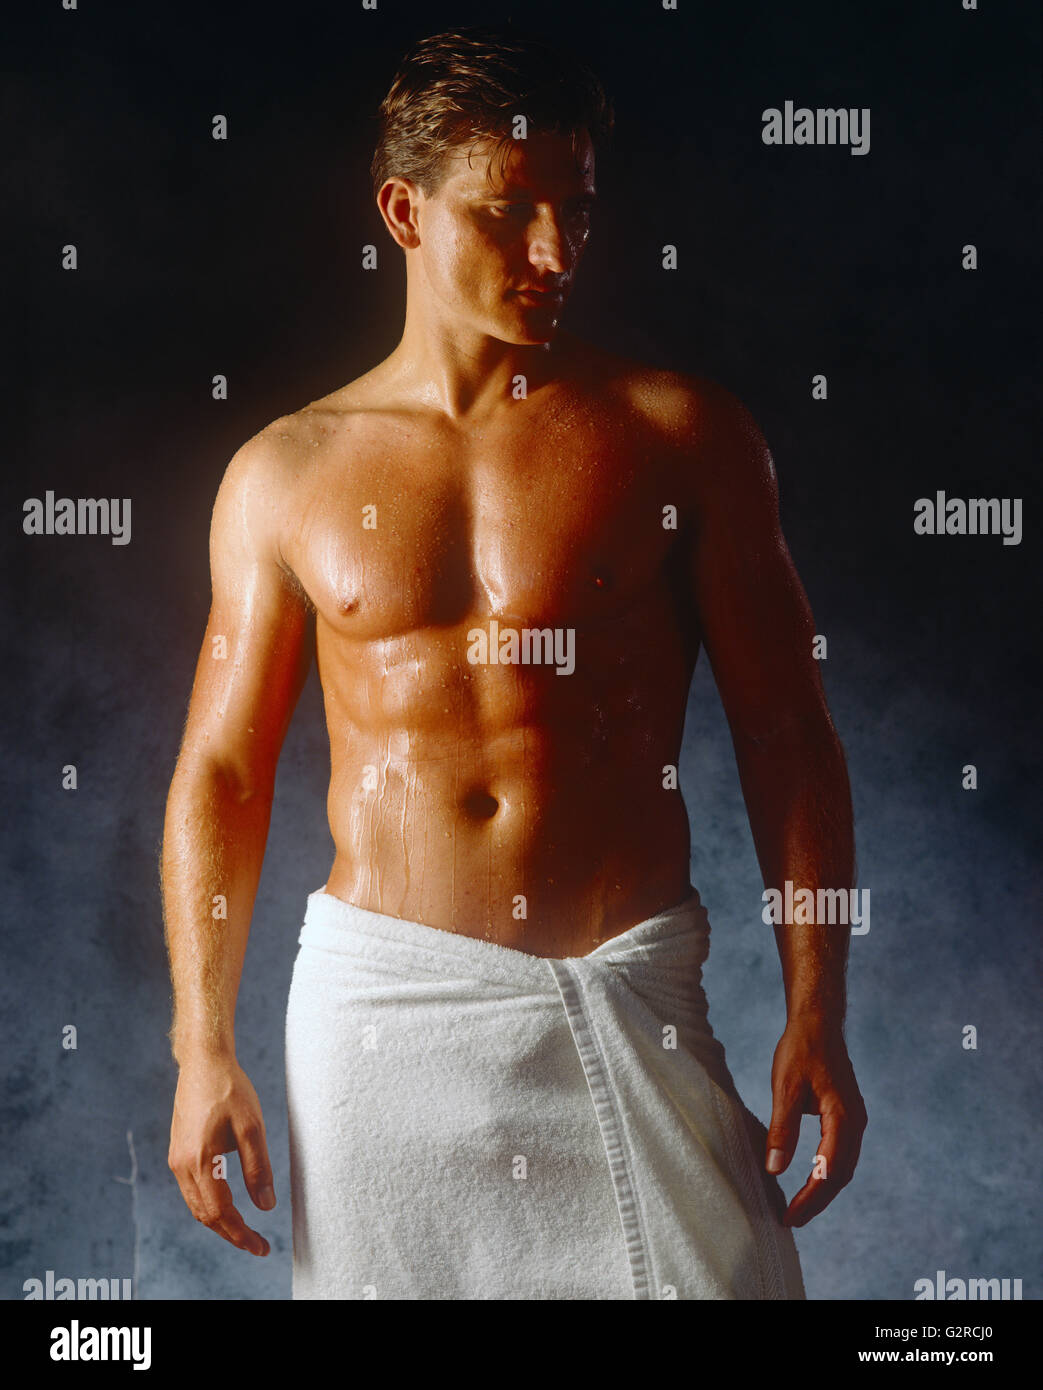 Guy in a towel - Stock Image